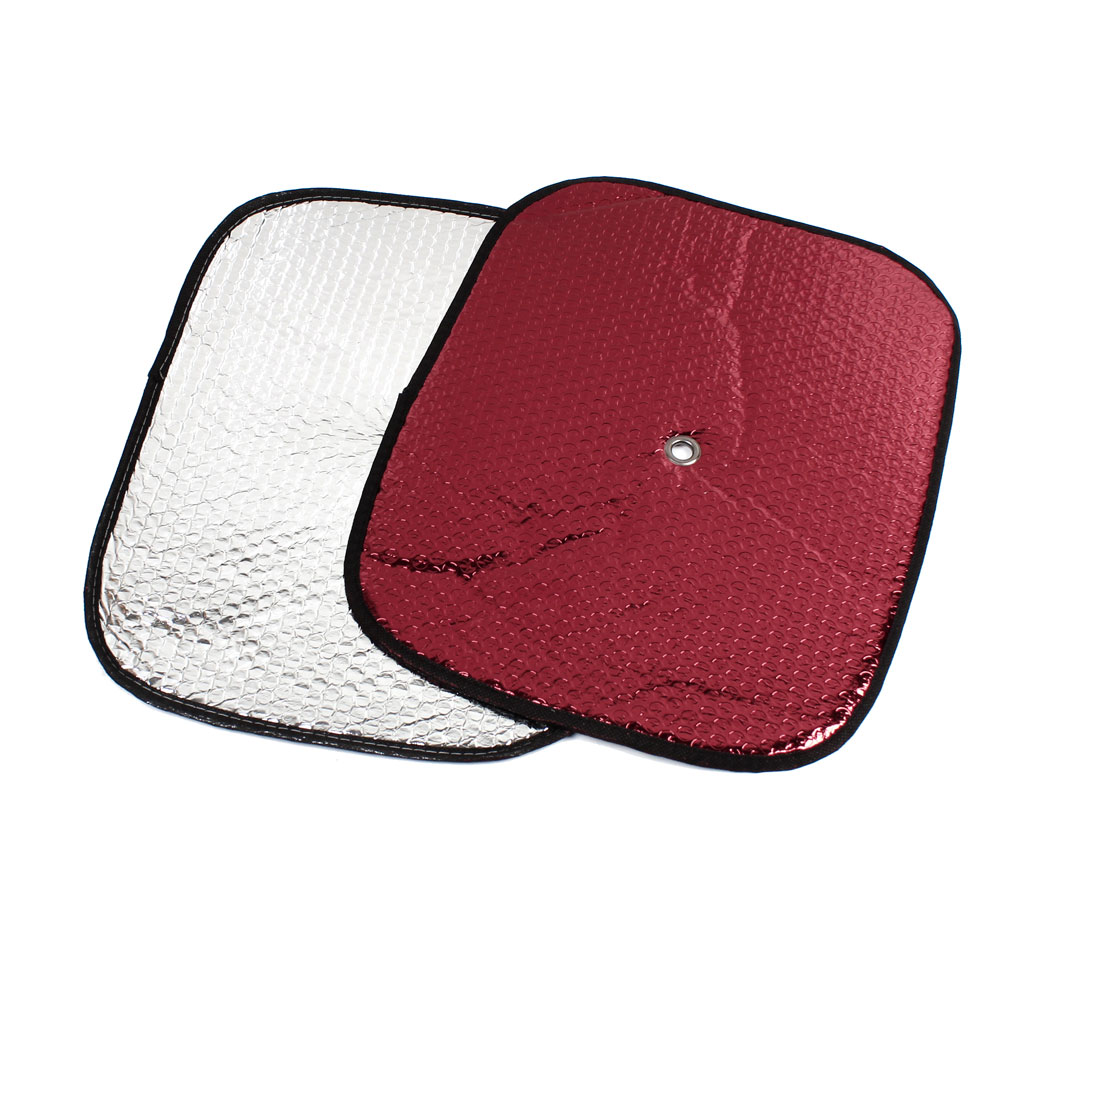 Windshield Sun Visor Sunshield Sunshade Red 40cm x 32cm 2pcs for Car